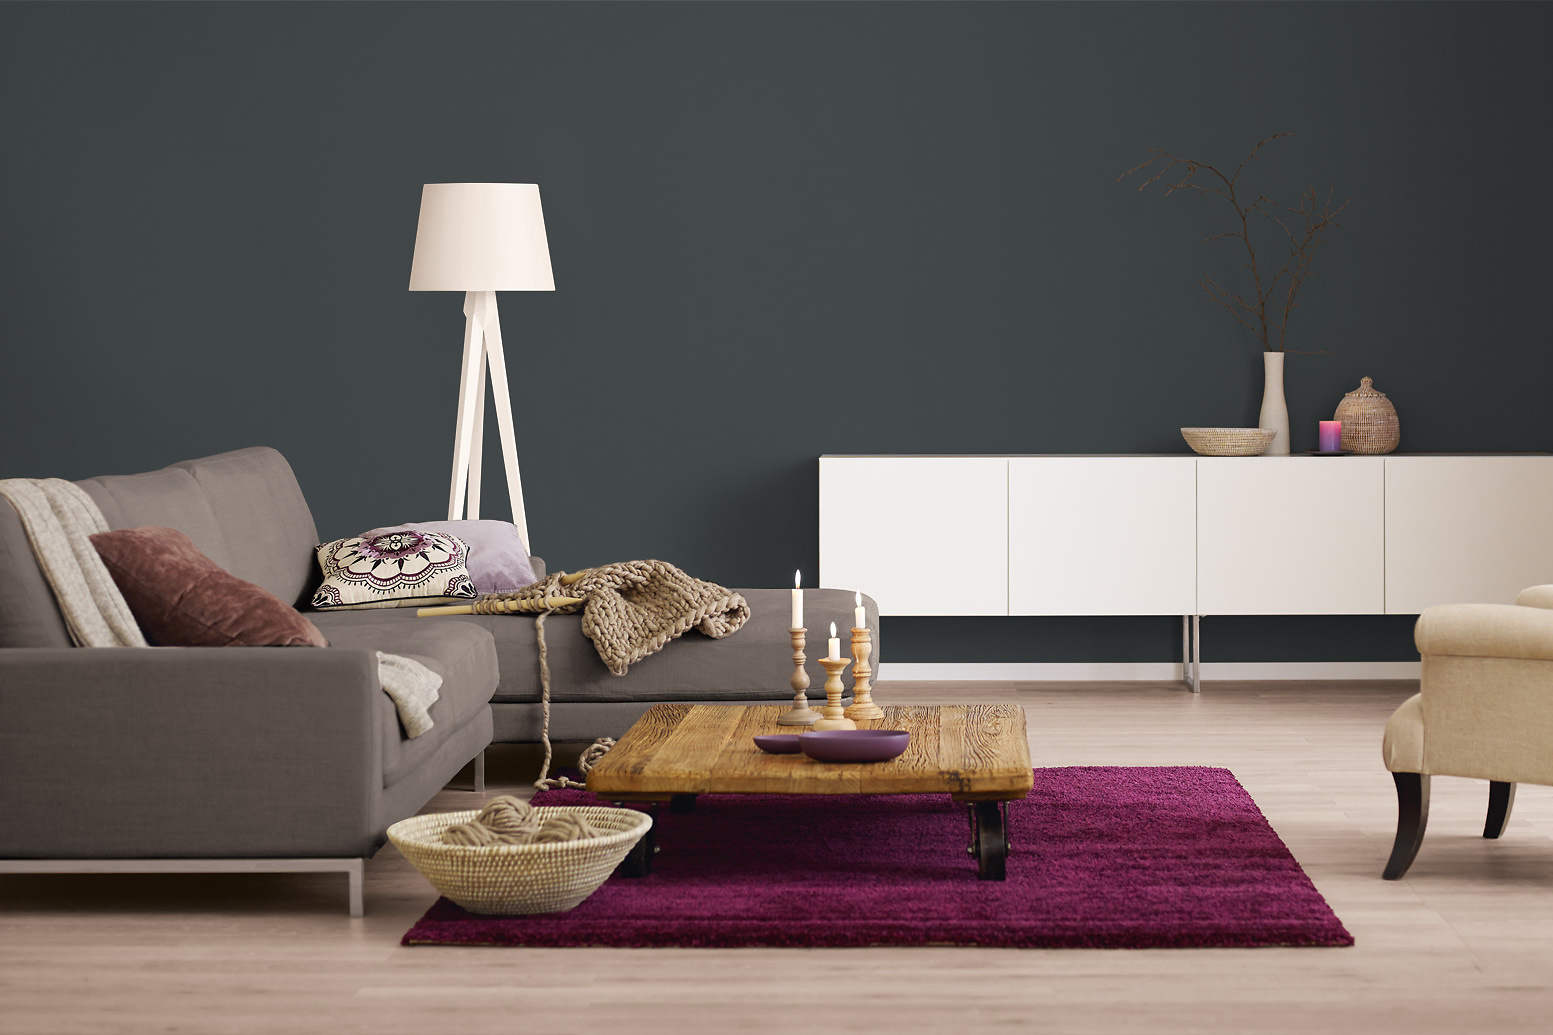 innenfarbe in grau anthrazit streichen alpina. Black Bedroom Furniture Sets. Home Design Ideas